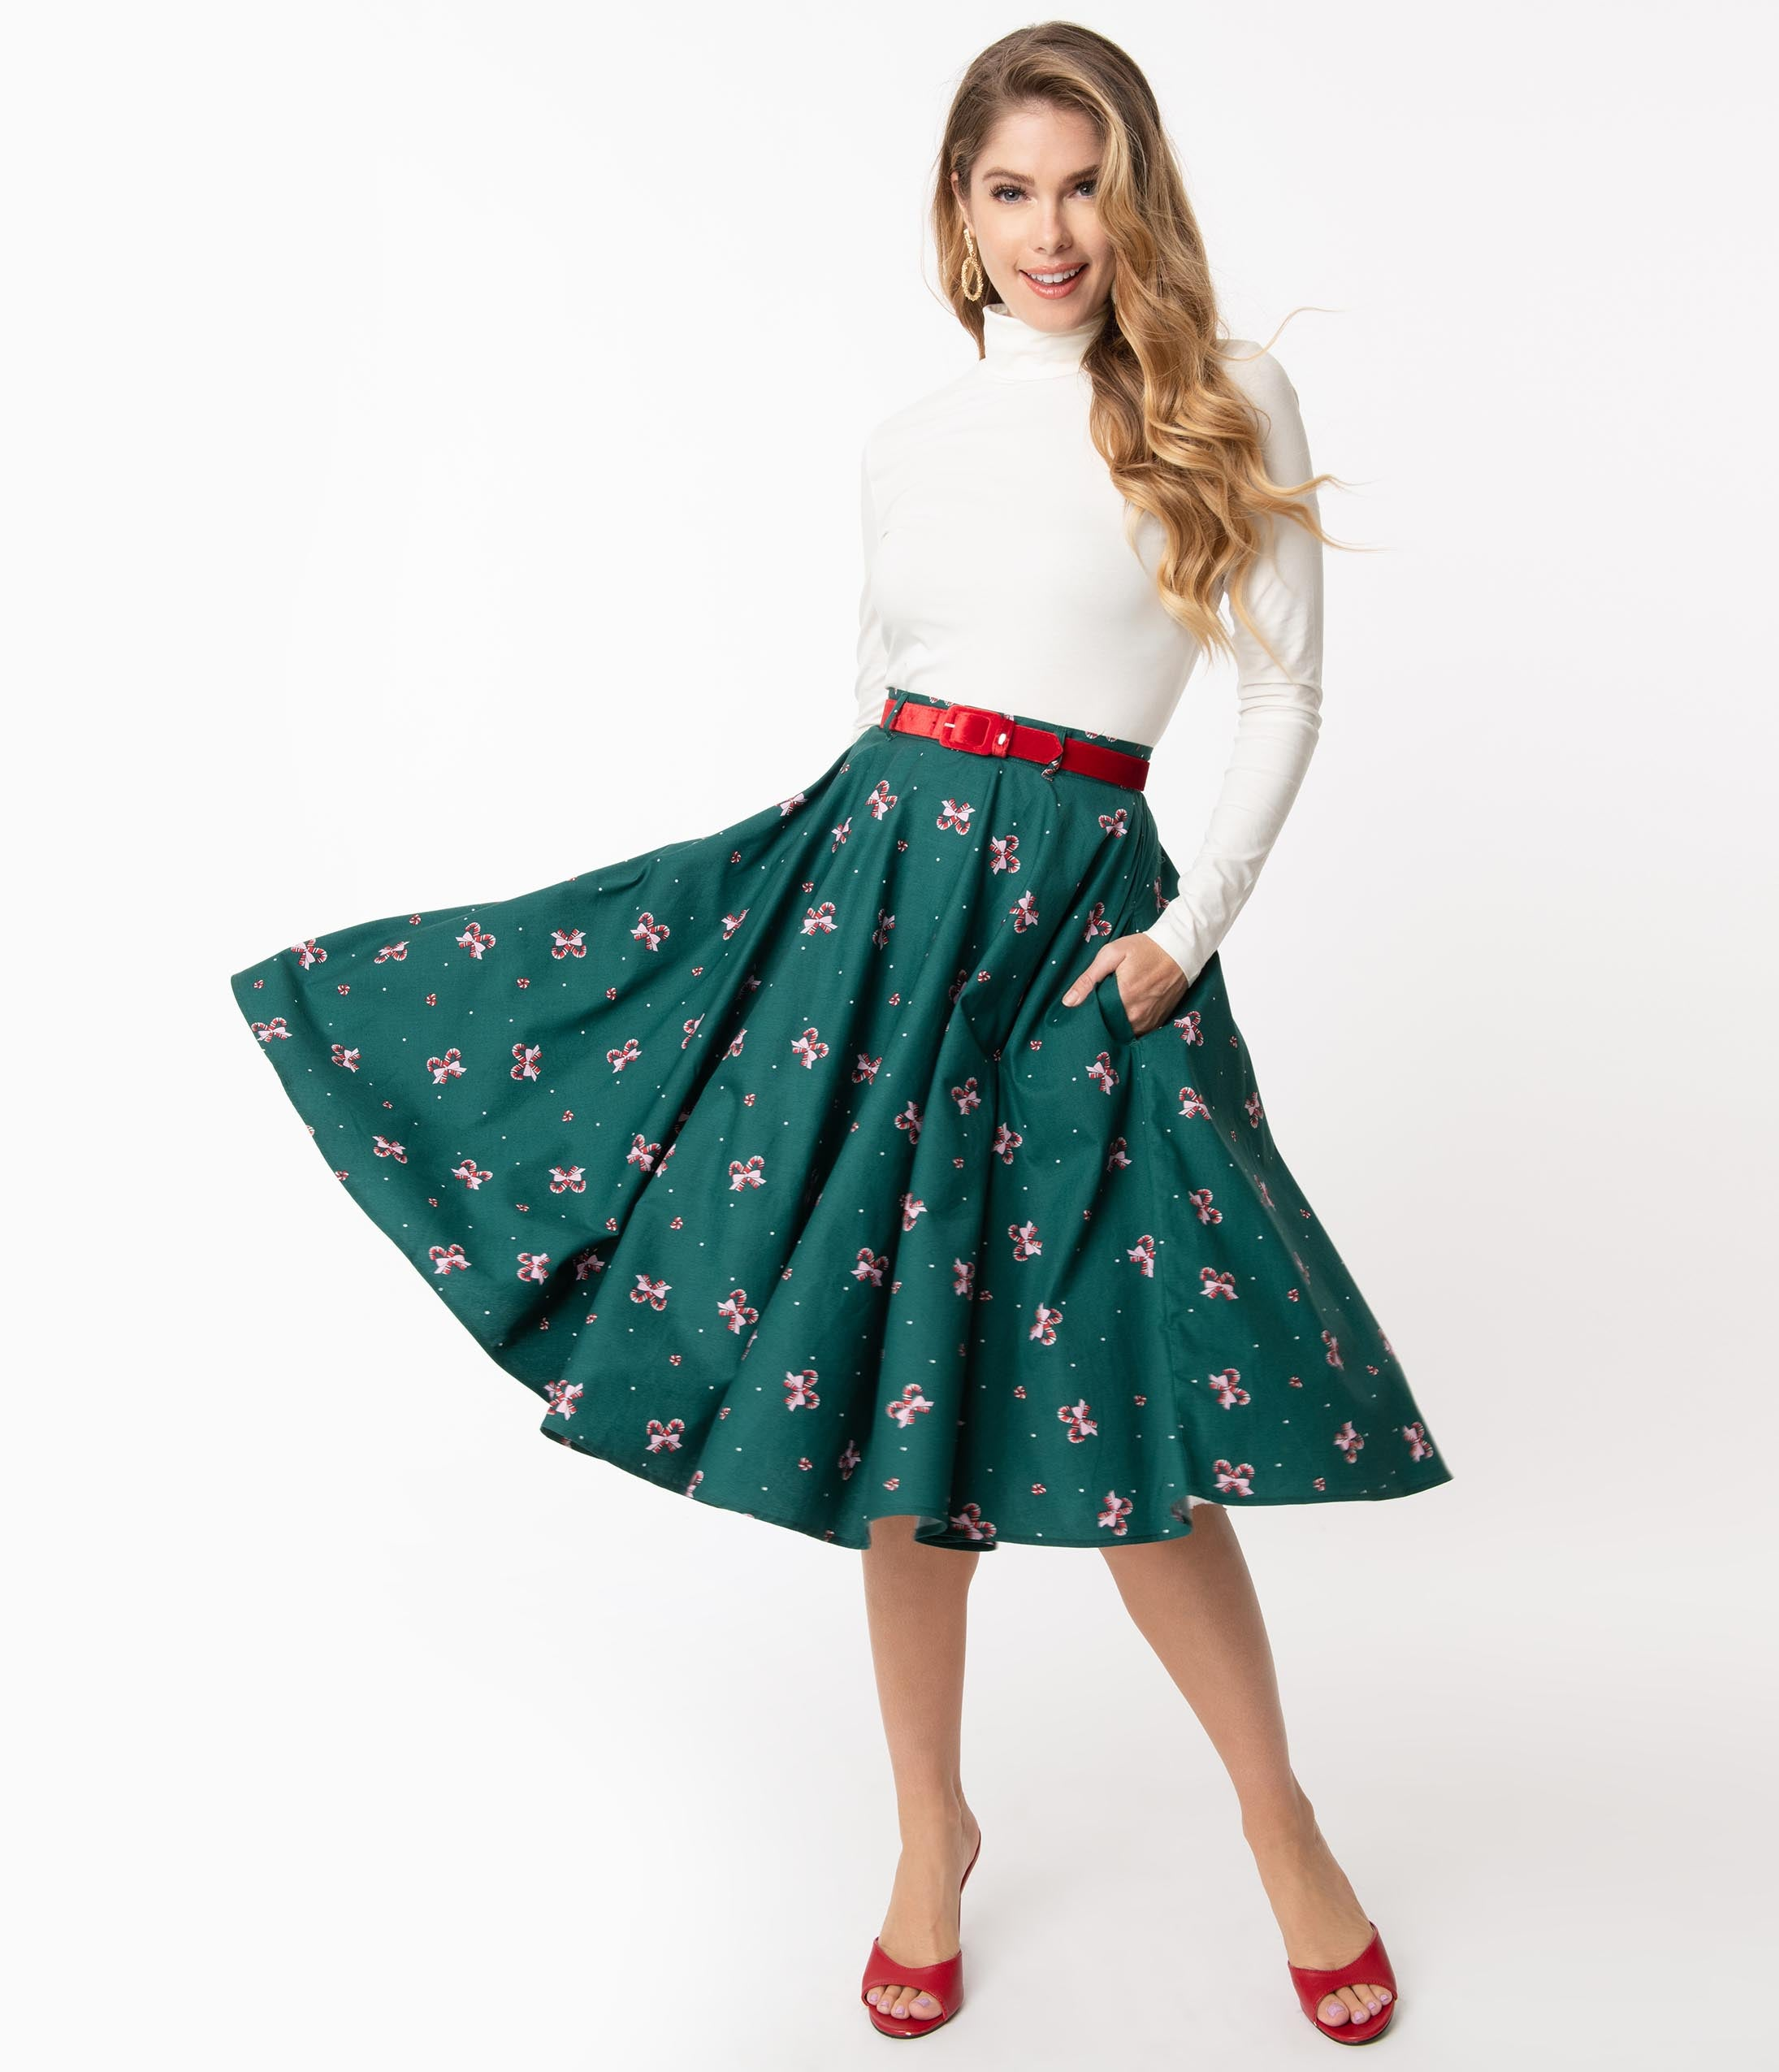 50s Skirt Styles | Poodle Skirts, Circle Skirts, Pencil Skirts 1950s Hell Bunny 1950S Emerald  Candy Cane Beth Swing Skirt $62.00 AT vintagedancer.com